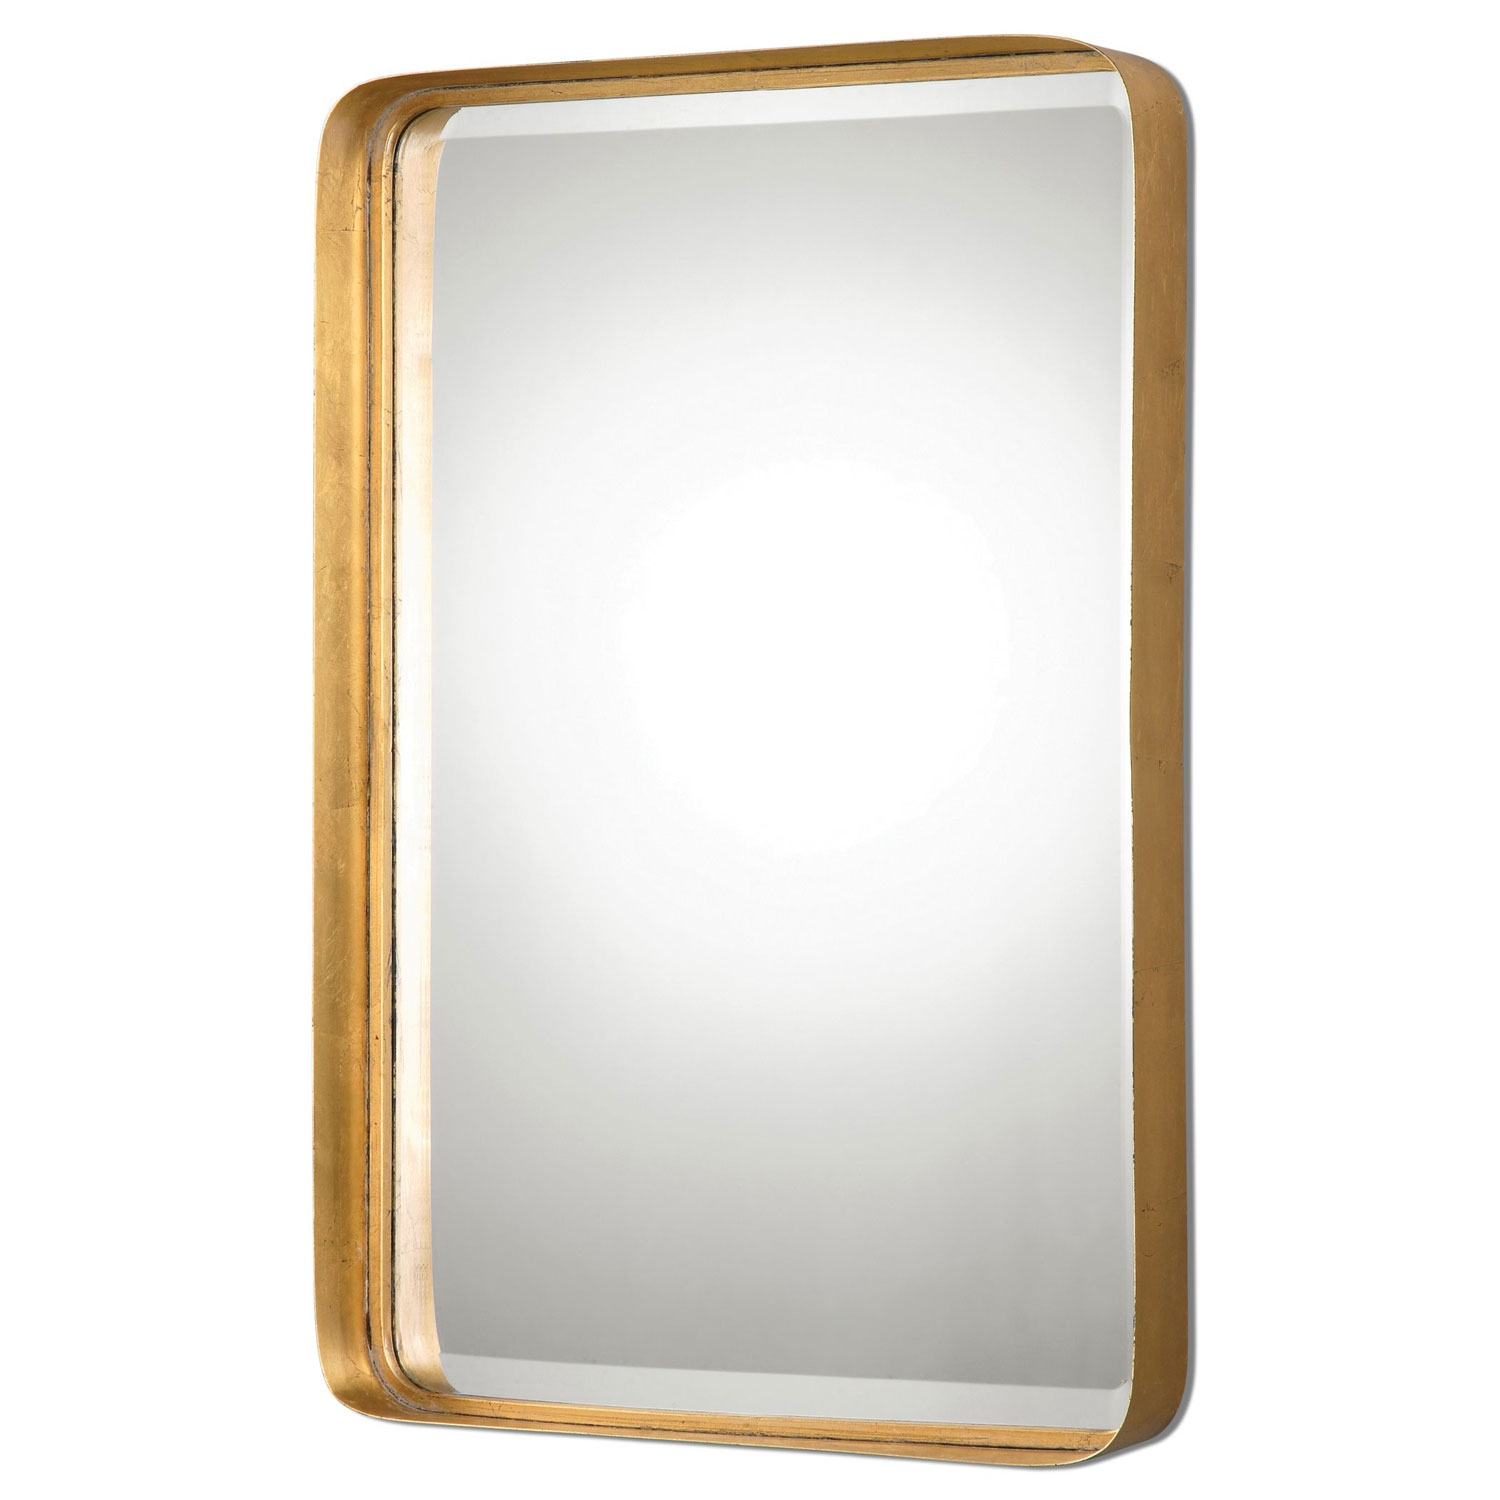 Crofton Antique Gold Mirror Uttermost Rectangle Mirrors Home Decor In Antiqued Wall Mirror (Image 4 of 15)